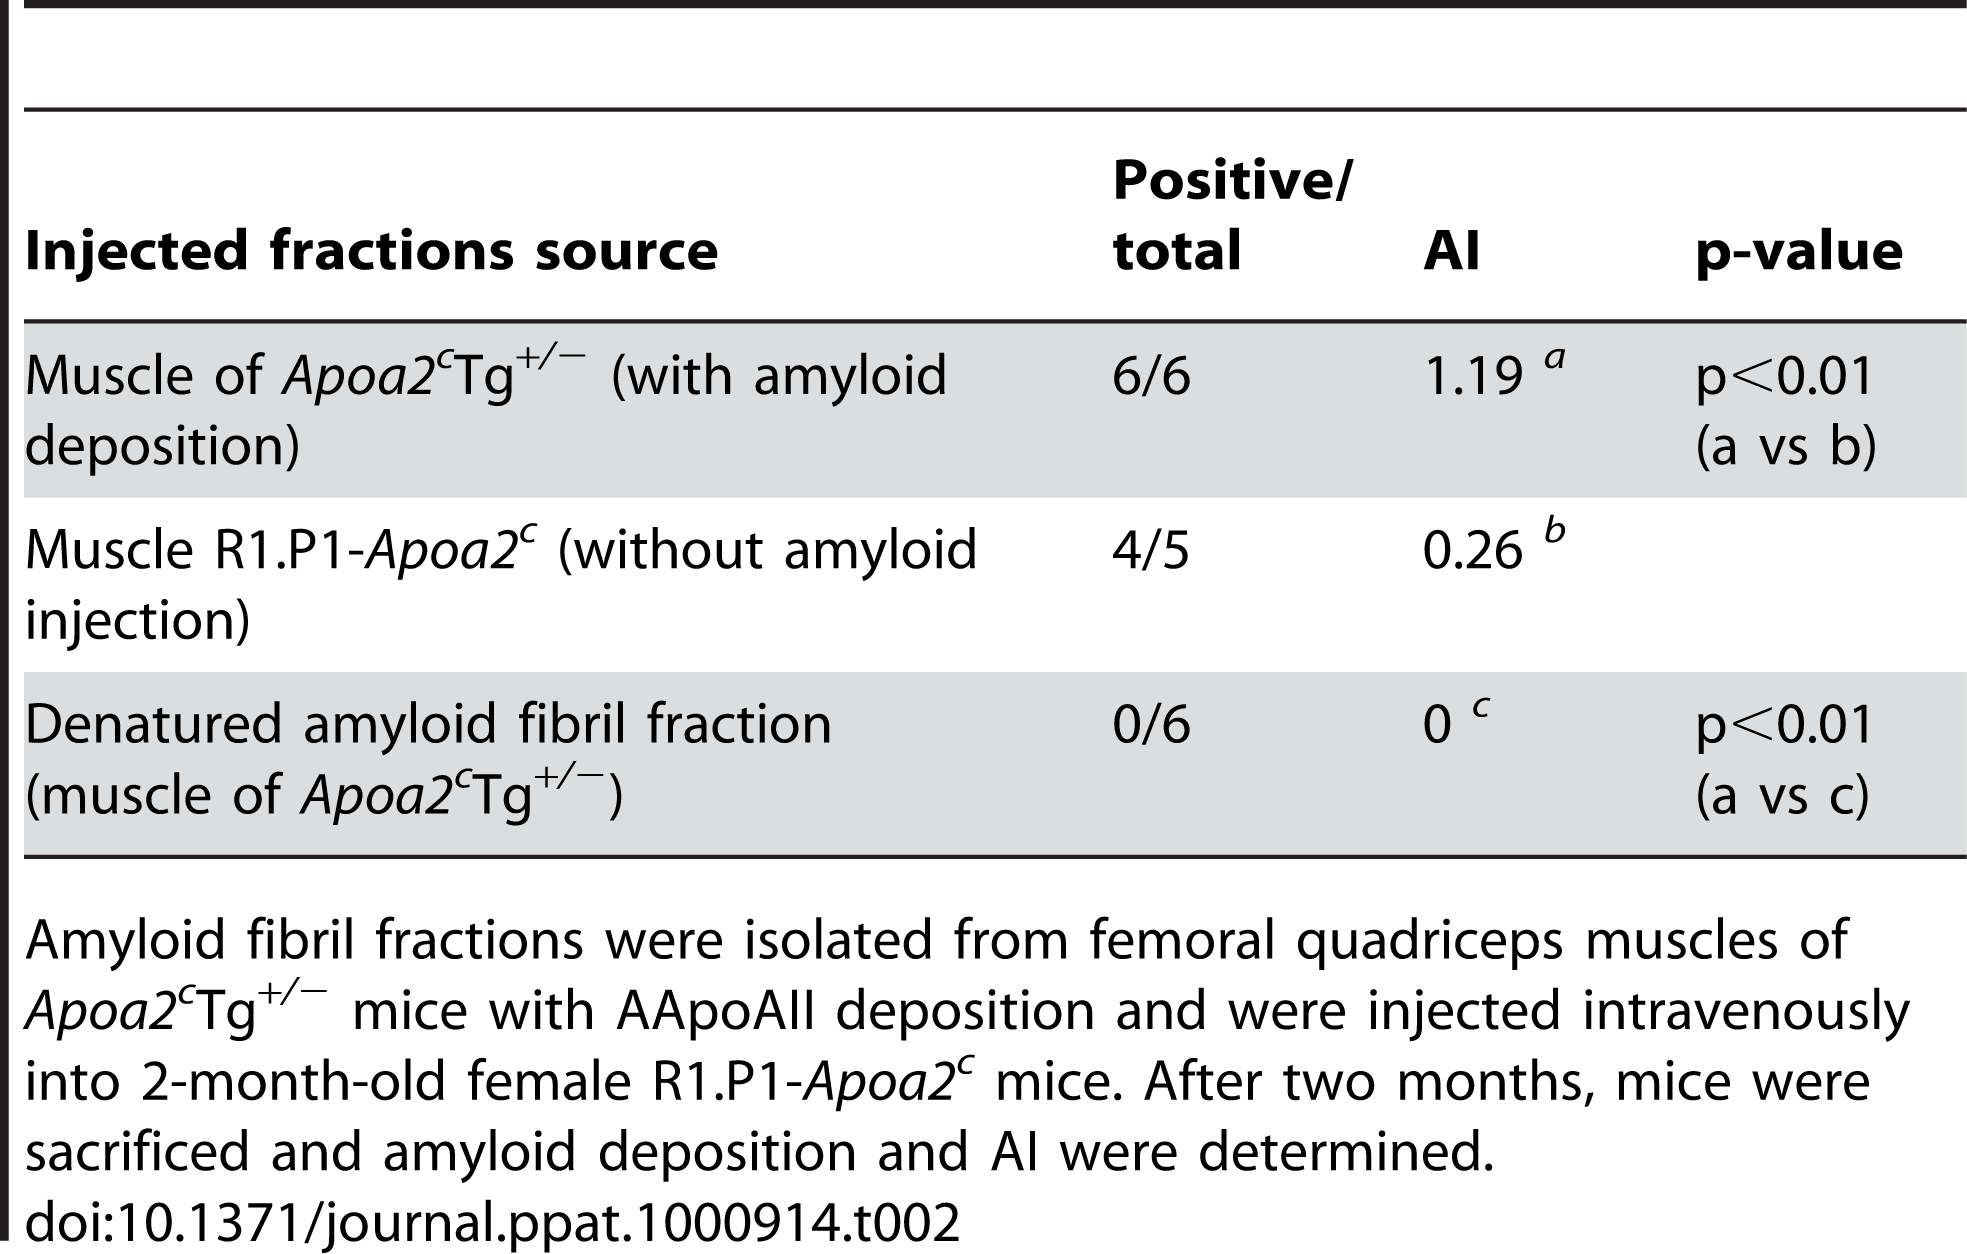 AApoAII amyloid deposits in R1.P1-<i>Apoa2<sup>c</sup></i> mice injected with amyloid fibril fractions isolated from the muscles of AApoAII-deposited mice.